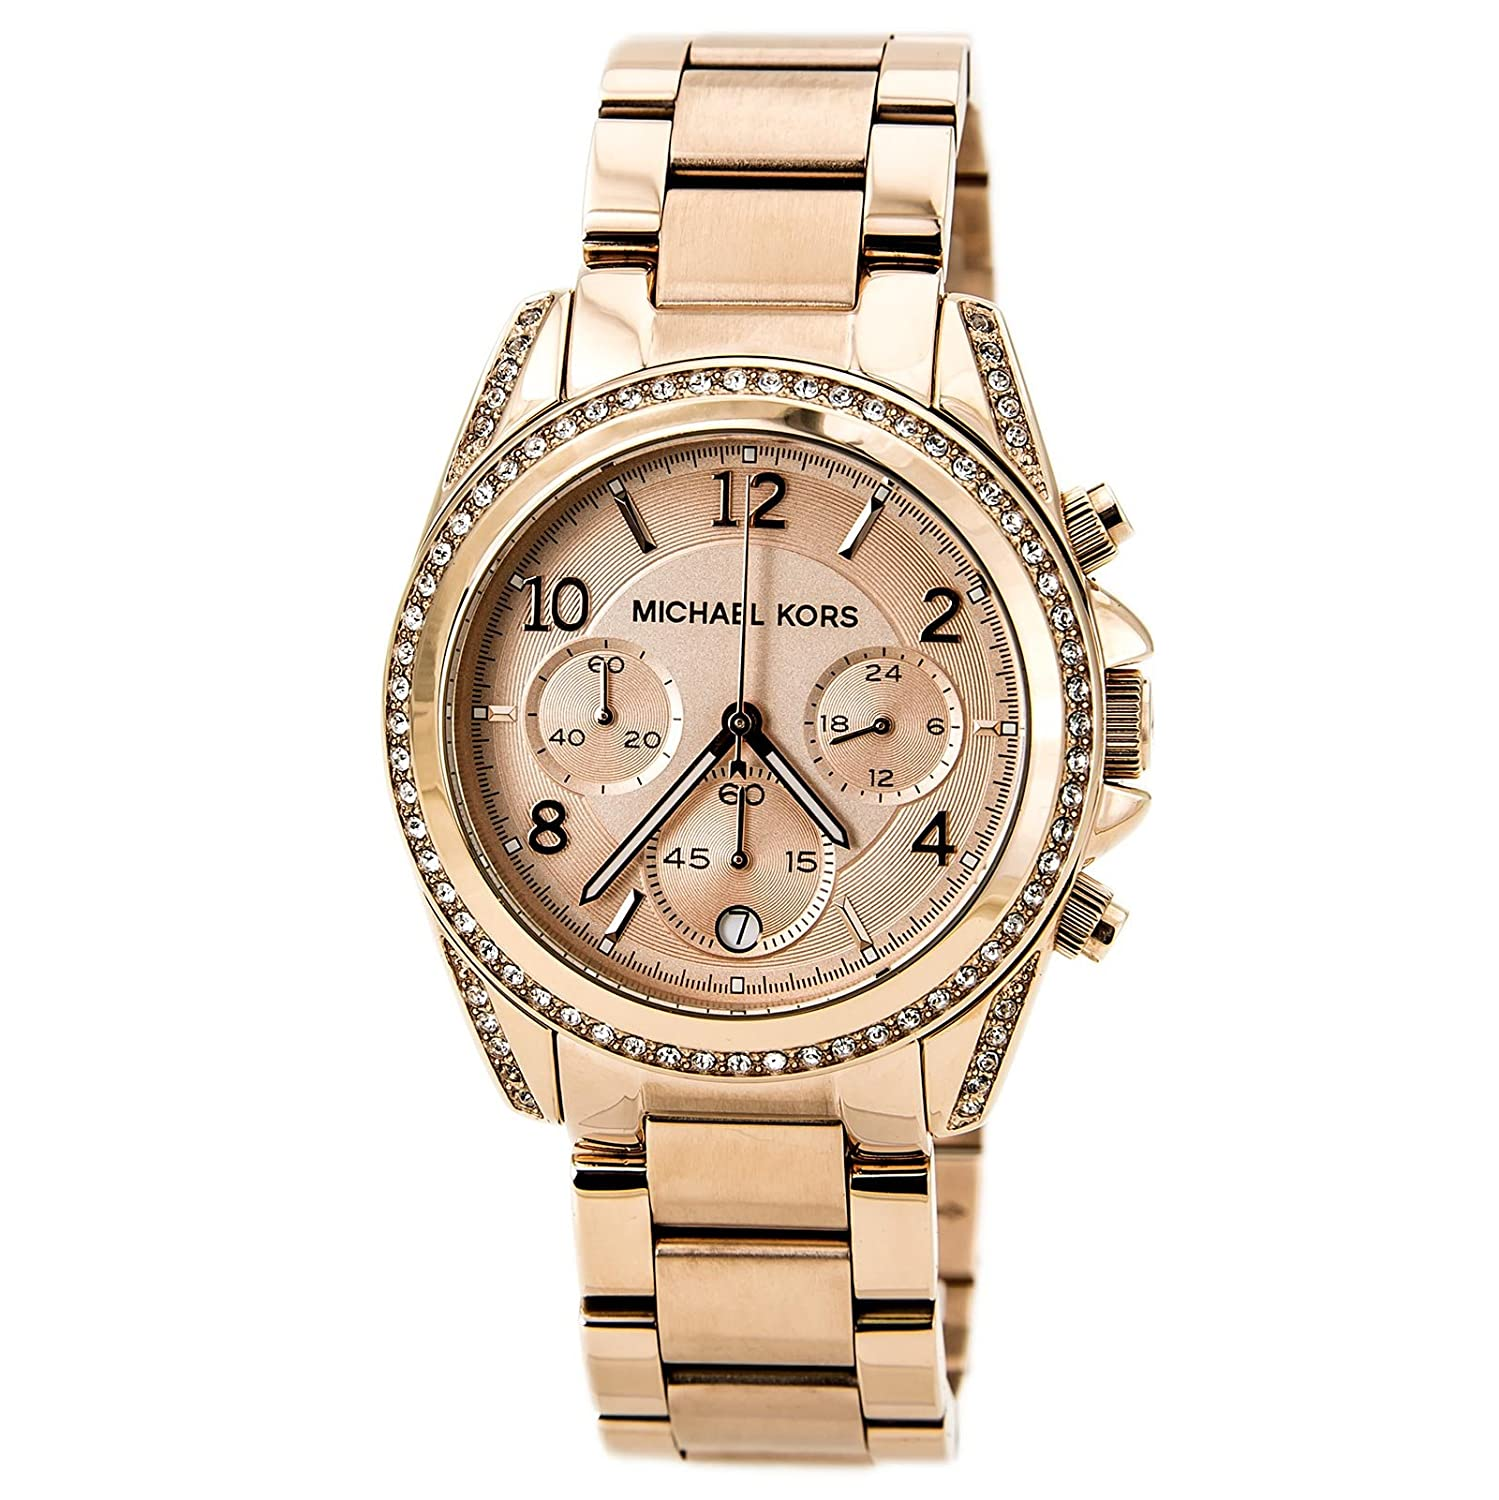 Michael Kors Rose Gold Tone Stainless Steel Runway Mk3278 Chronograph Dial Date Display Watches